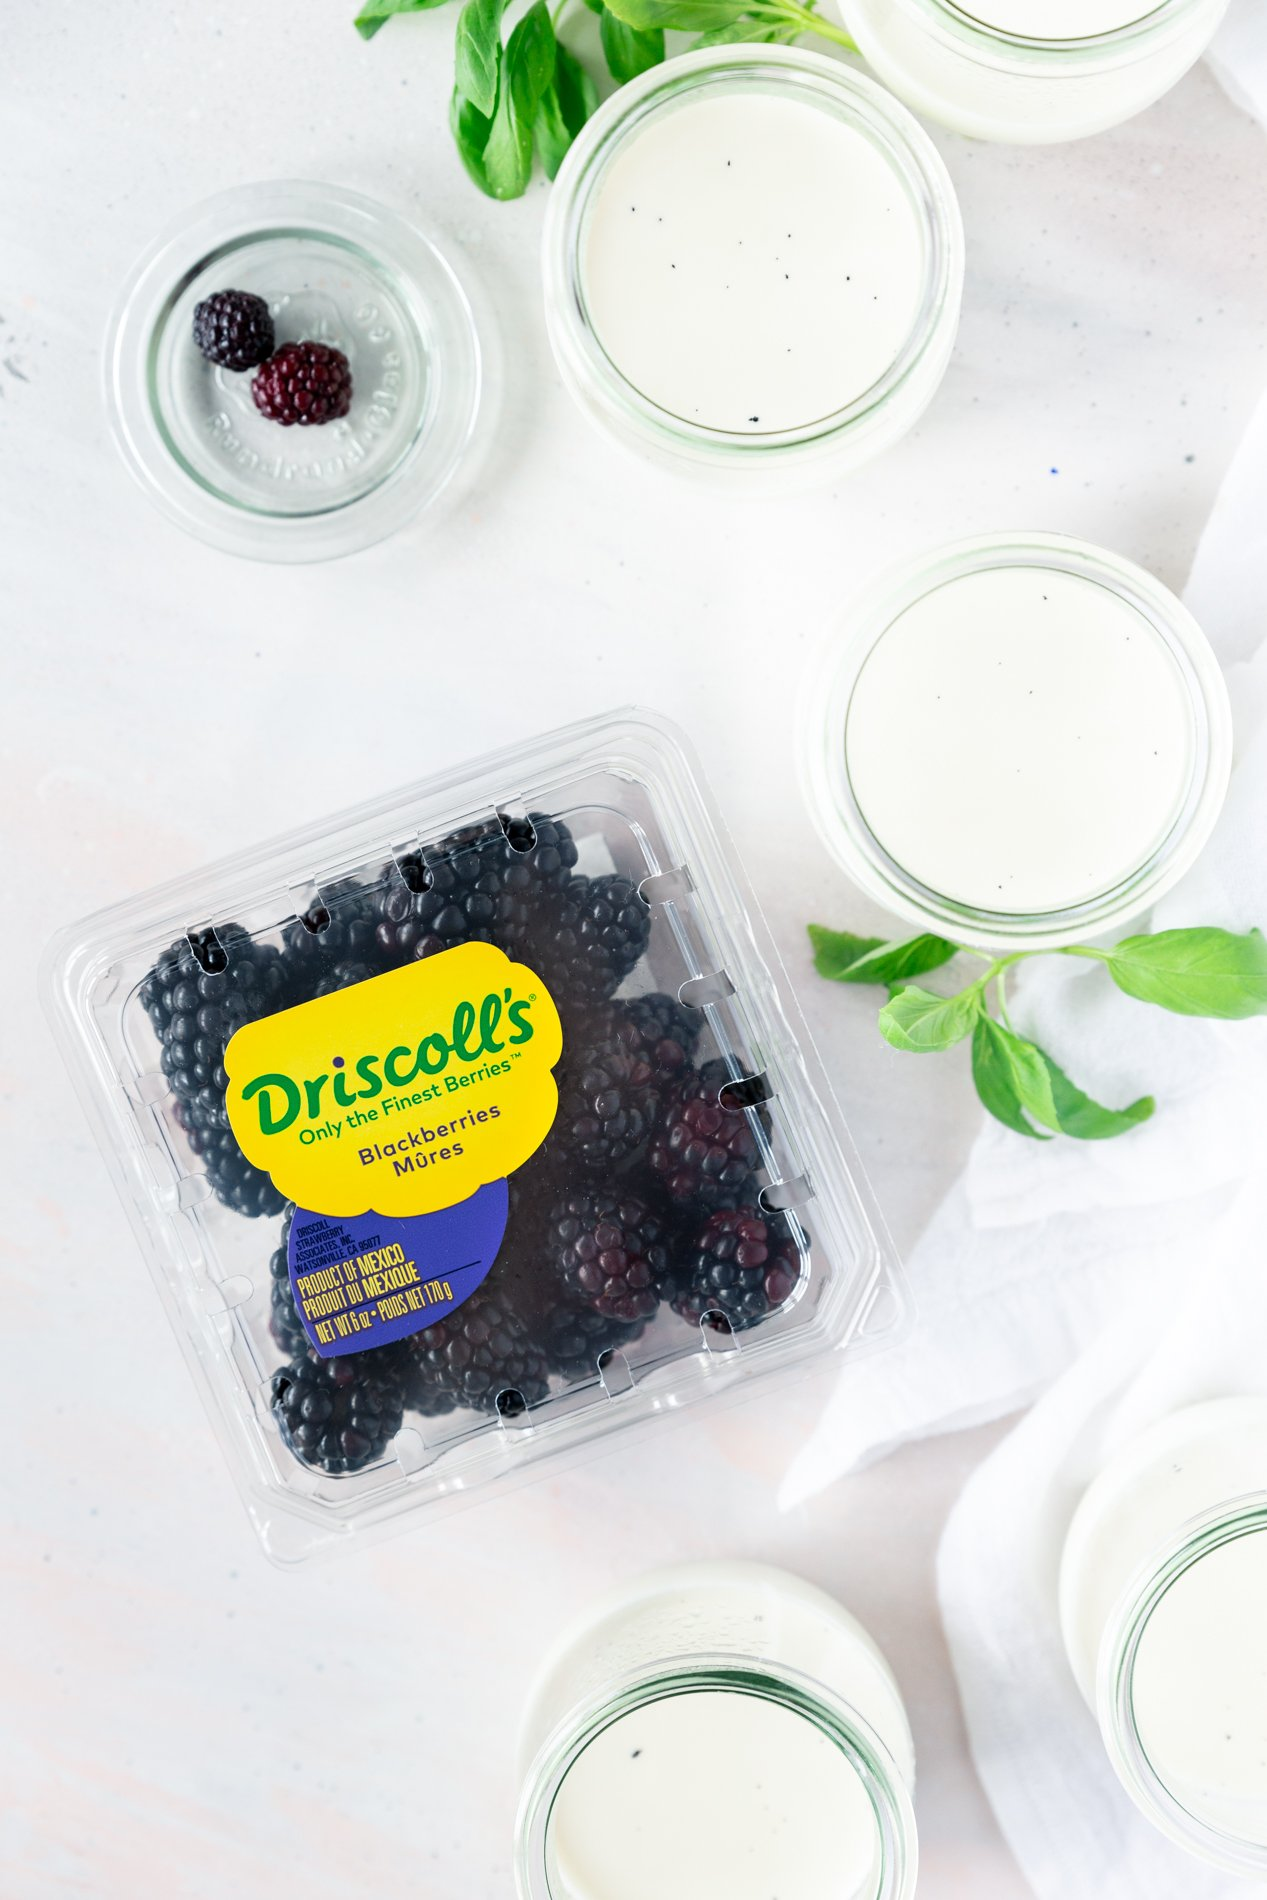 overhead view of jars of vanilla bean panna cotta, surrounded by fresh basil leaves with a container of Driscoll's blackberries.